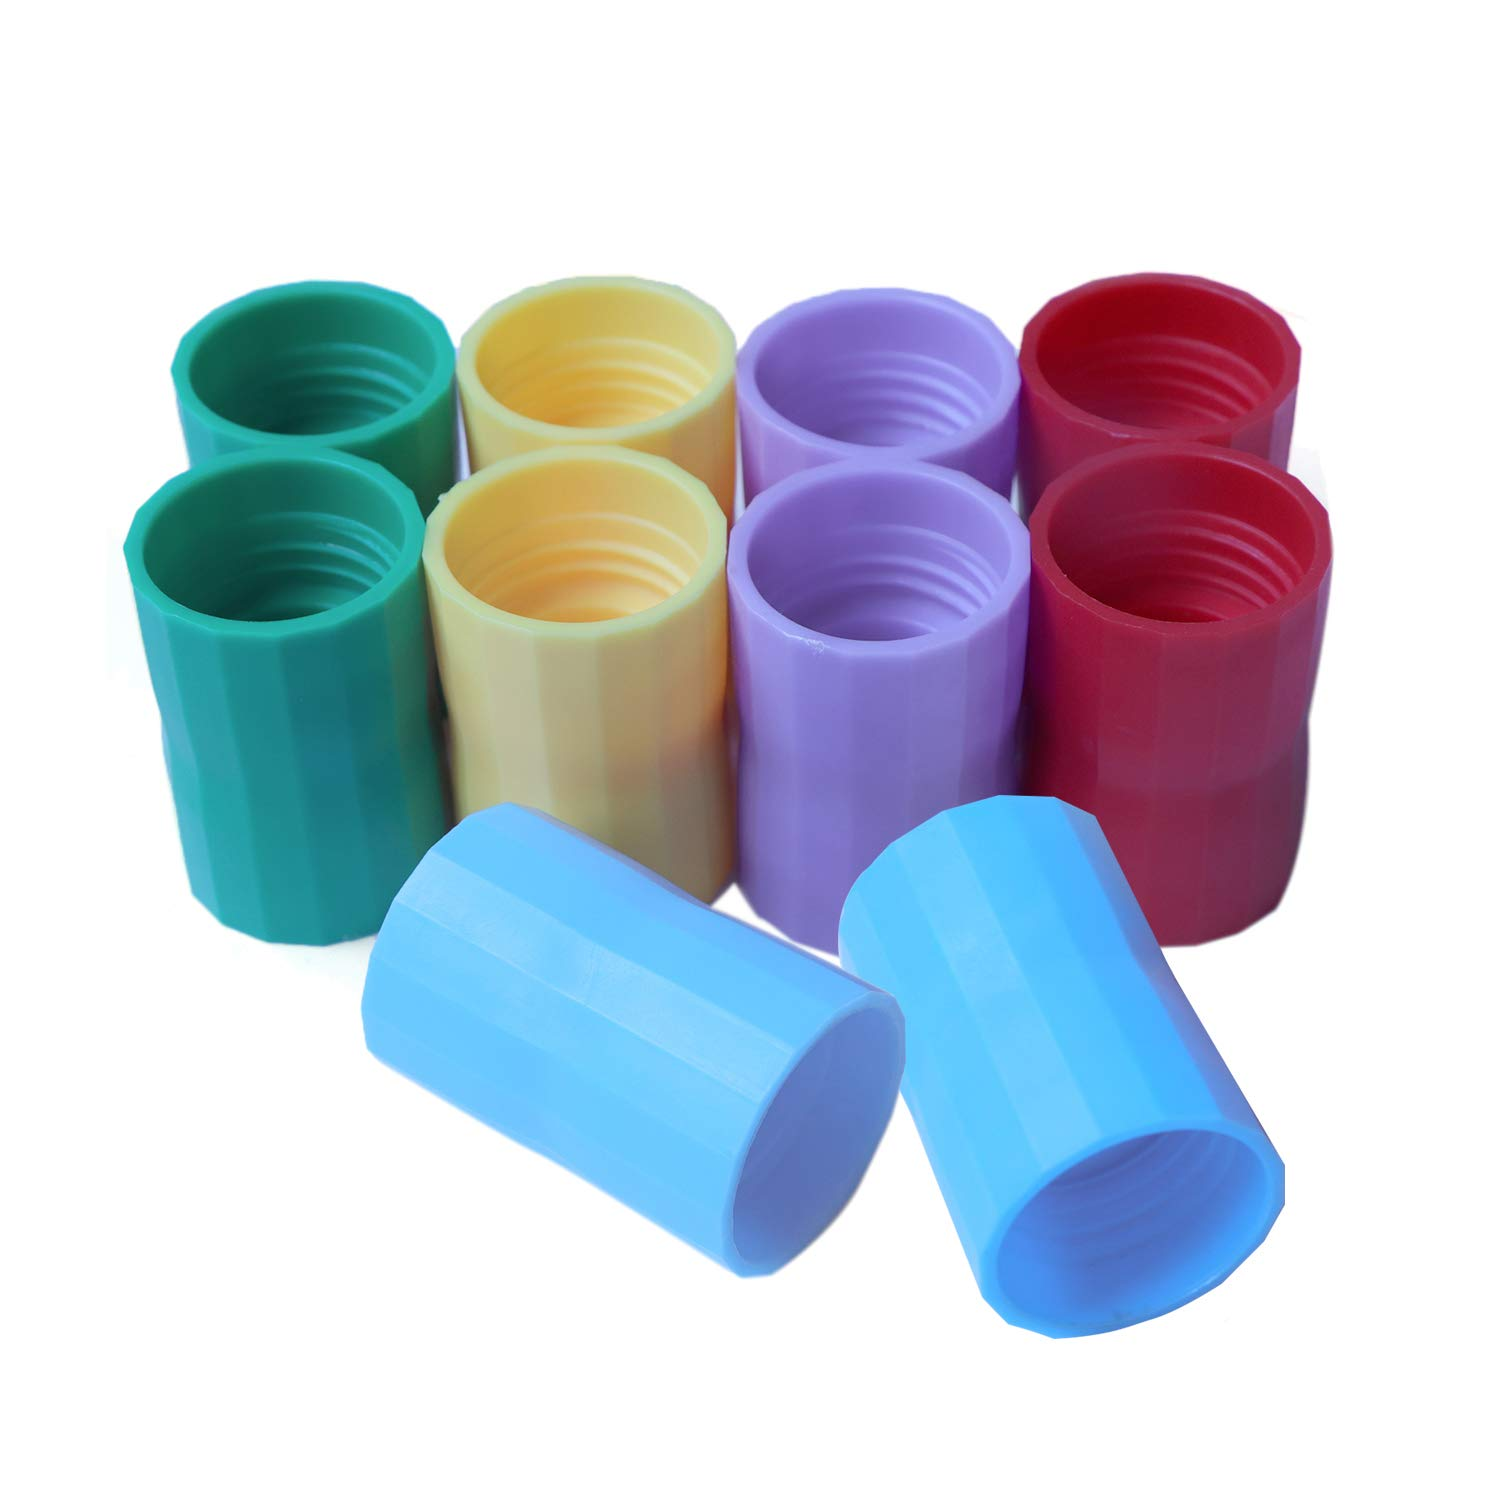 SPWOLFRT 10 Pieces Tornado Tube Bottle Connector Plastic Vortex Maker Cyclone Tube Toy Tornado in A Bottle Connector for Scientific Experiment and Test, 5 Colors (Random)